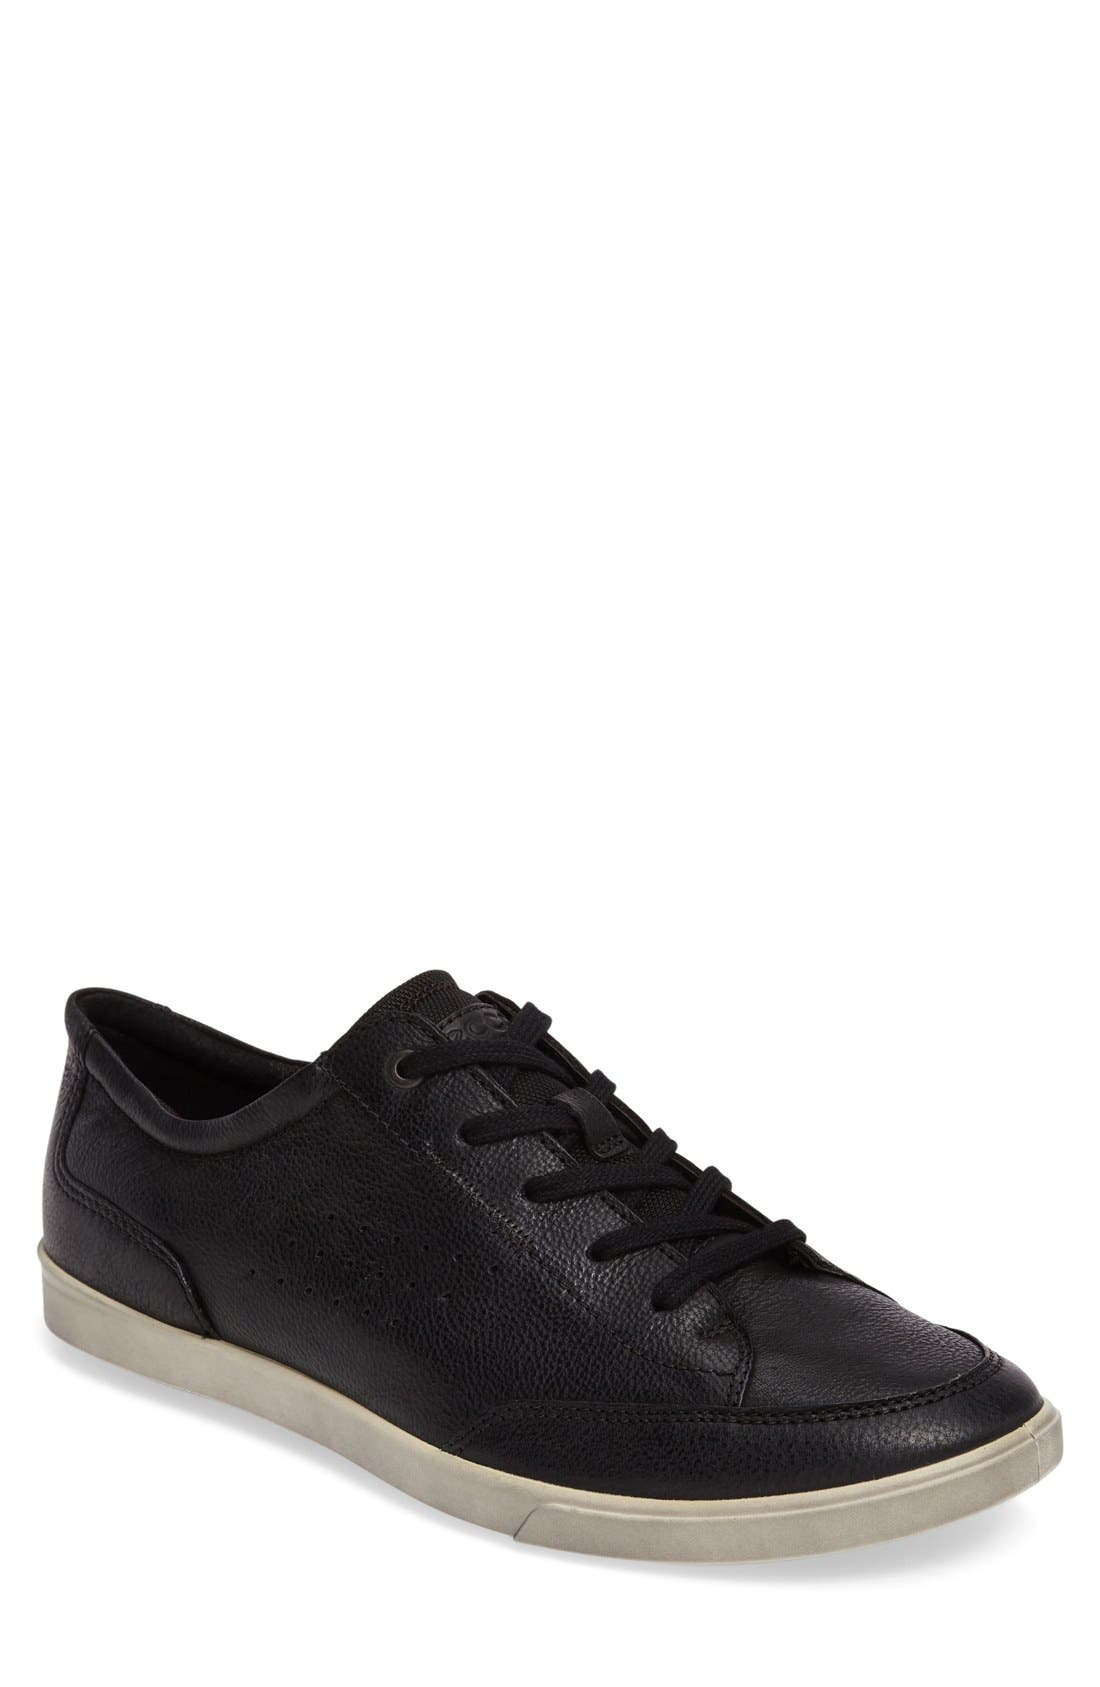 'Collin - Classic' Sneaker,                             Main thumbnail 1, color,                             Black Leather